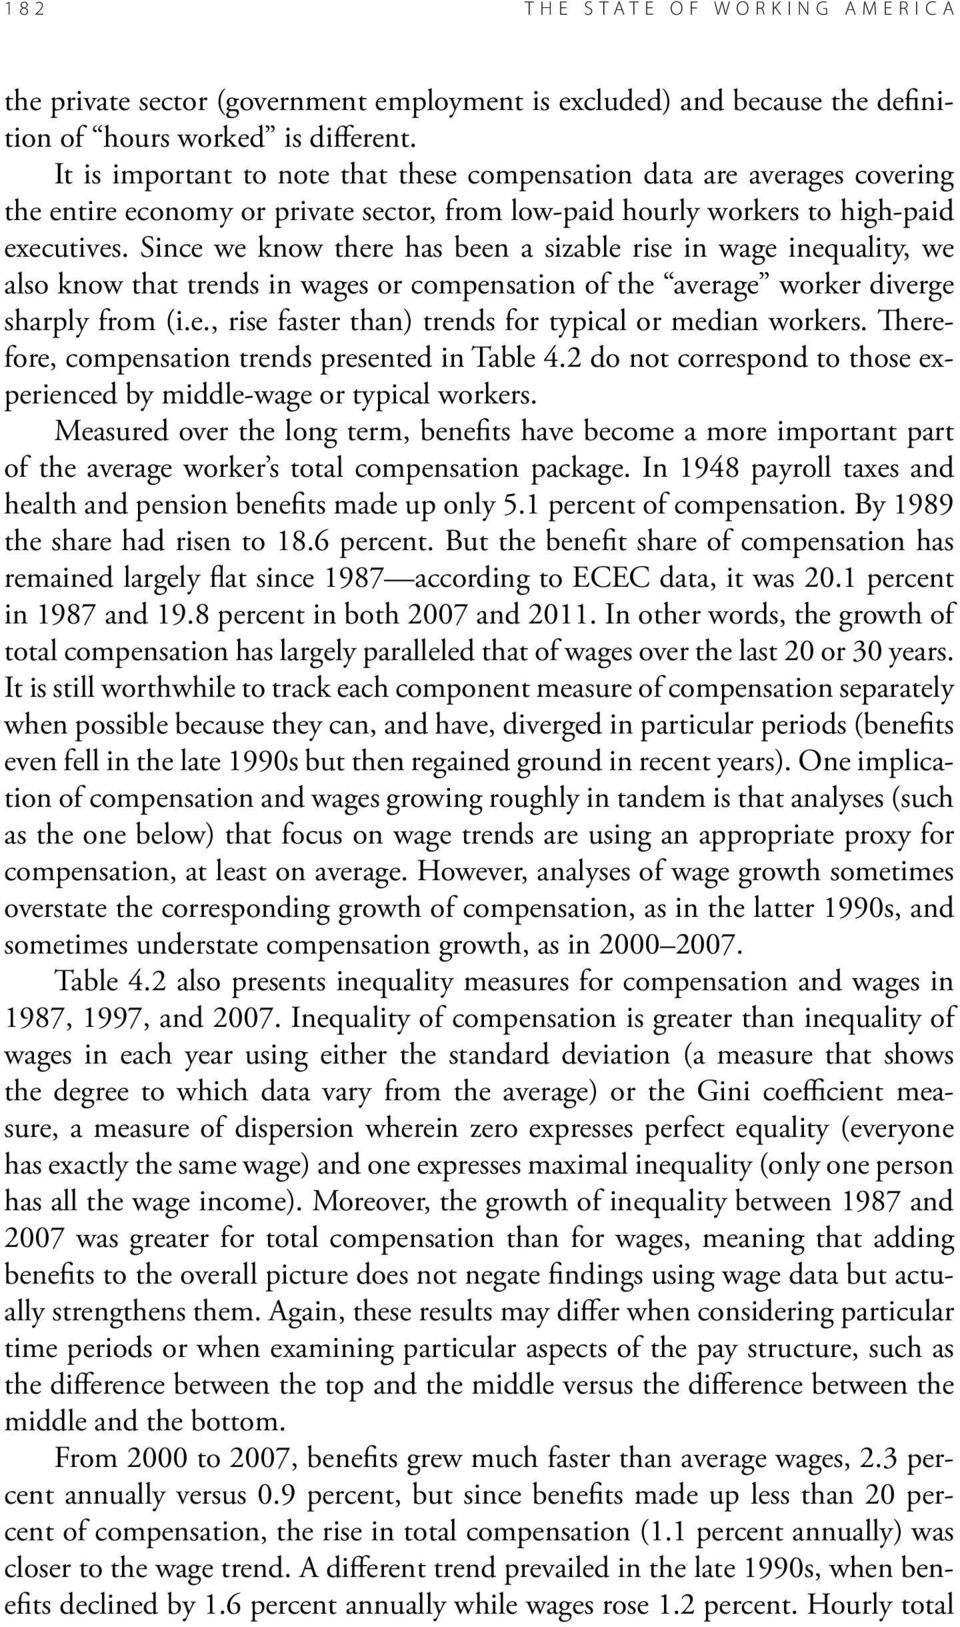 Since we know there has been a sizable rise in wage inequality, we also know that trends in wages or compensation of the average worker diverge sharply from (i.e., rise faster than) trends for typical or median workers.